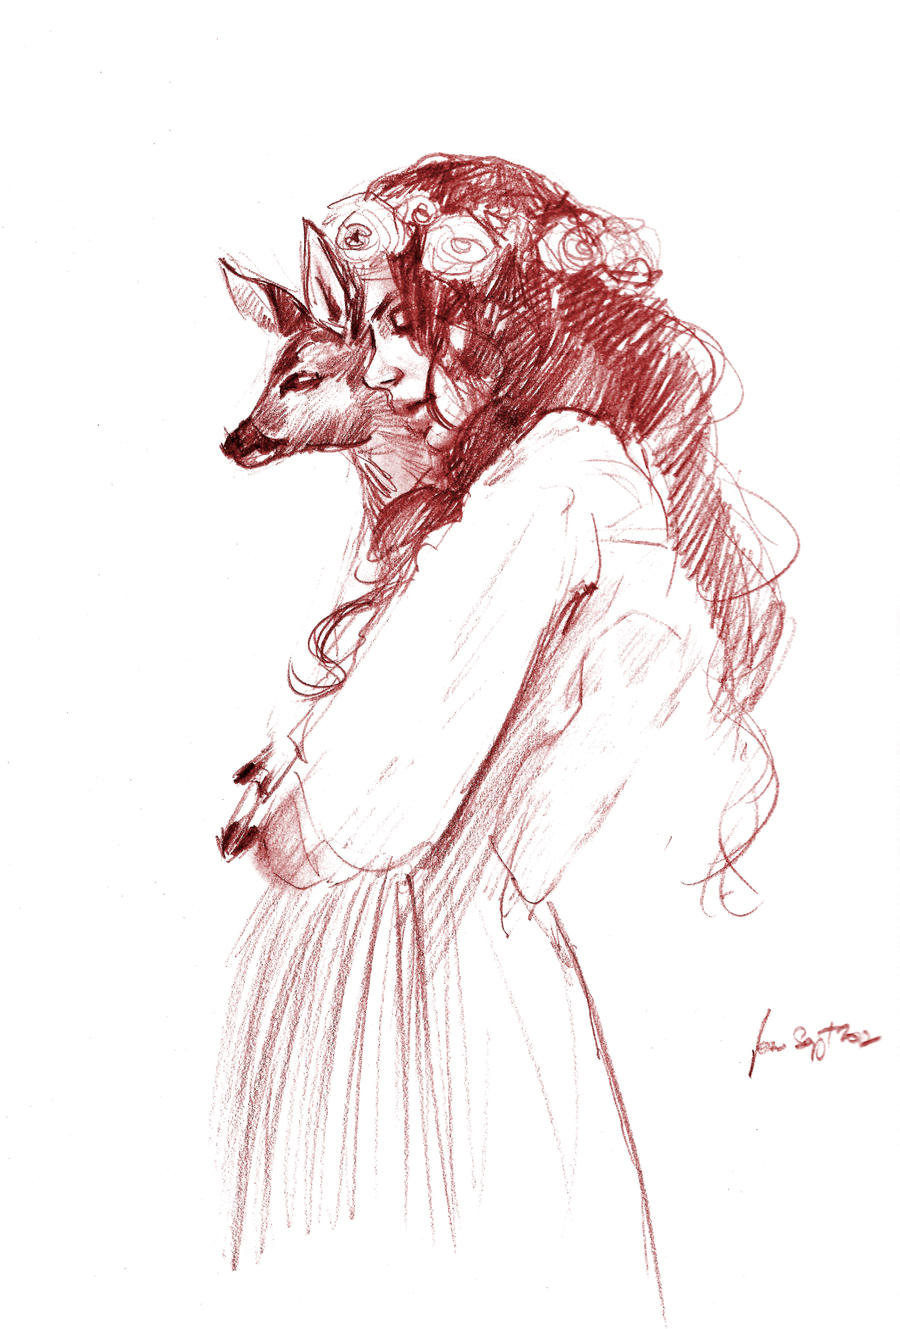 daily sketch 1087 by nosoart